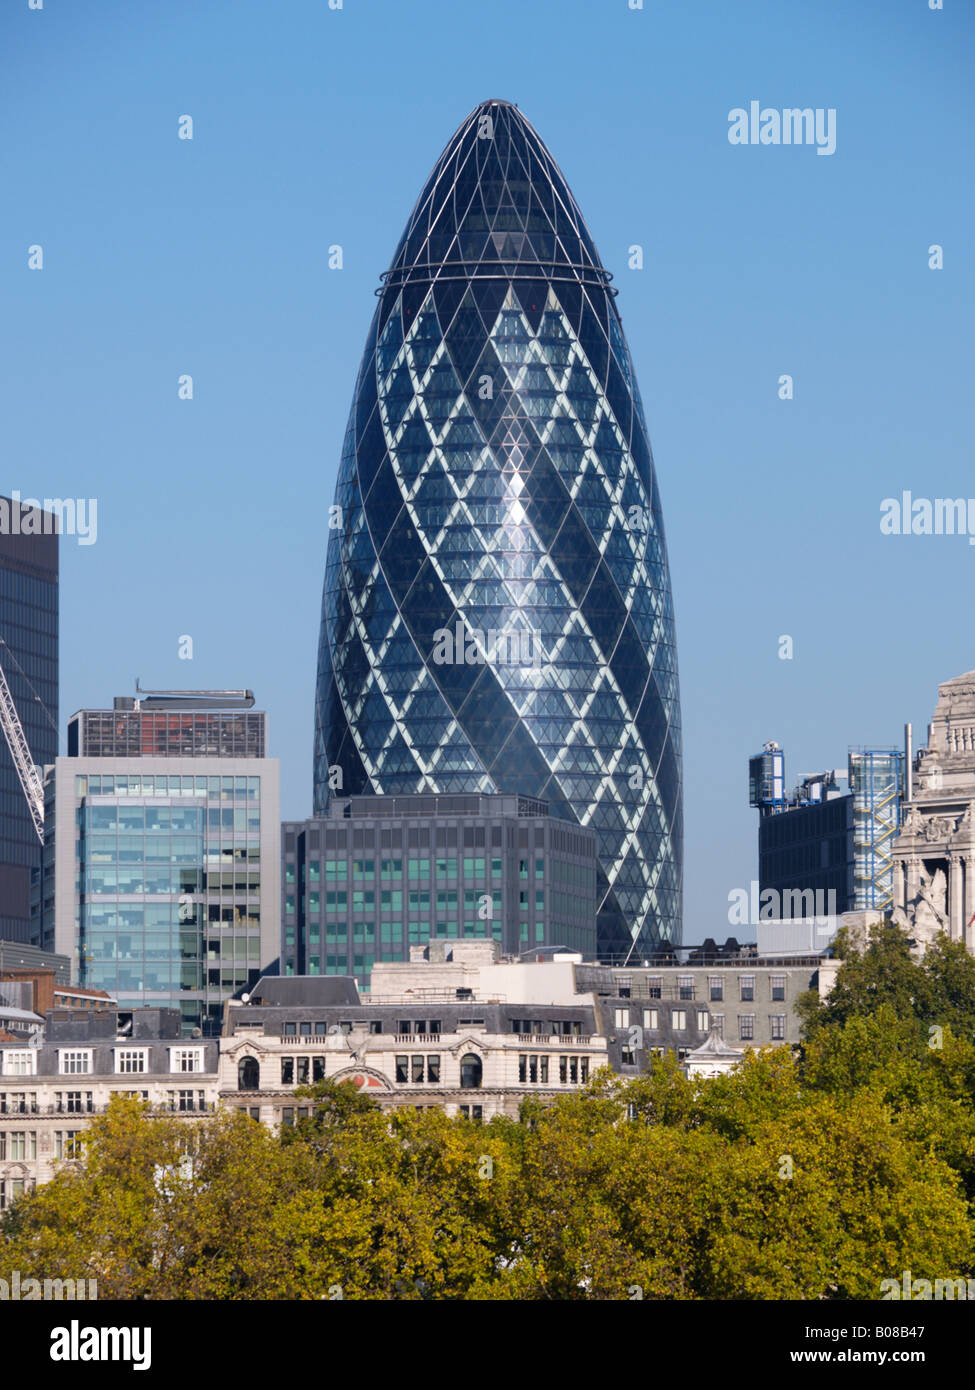 The Swiss Reinsurance Re building also knwon as the gherkin by architect Norman Foster and partners London UK 30 - Stock Image